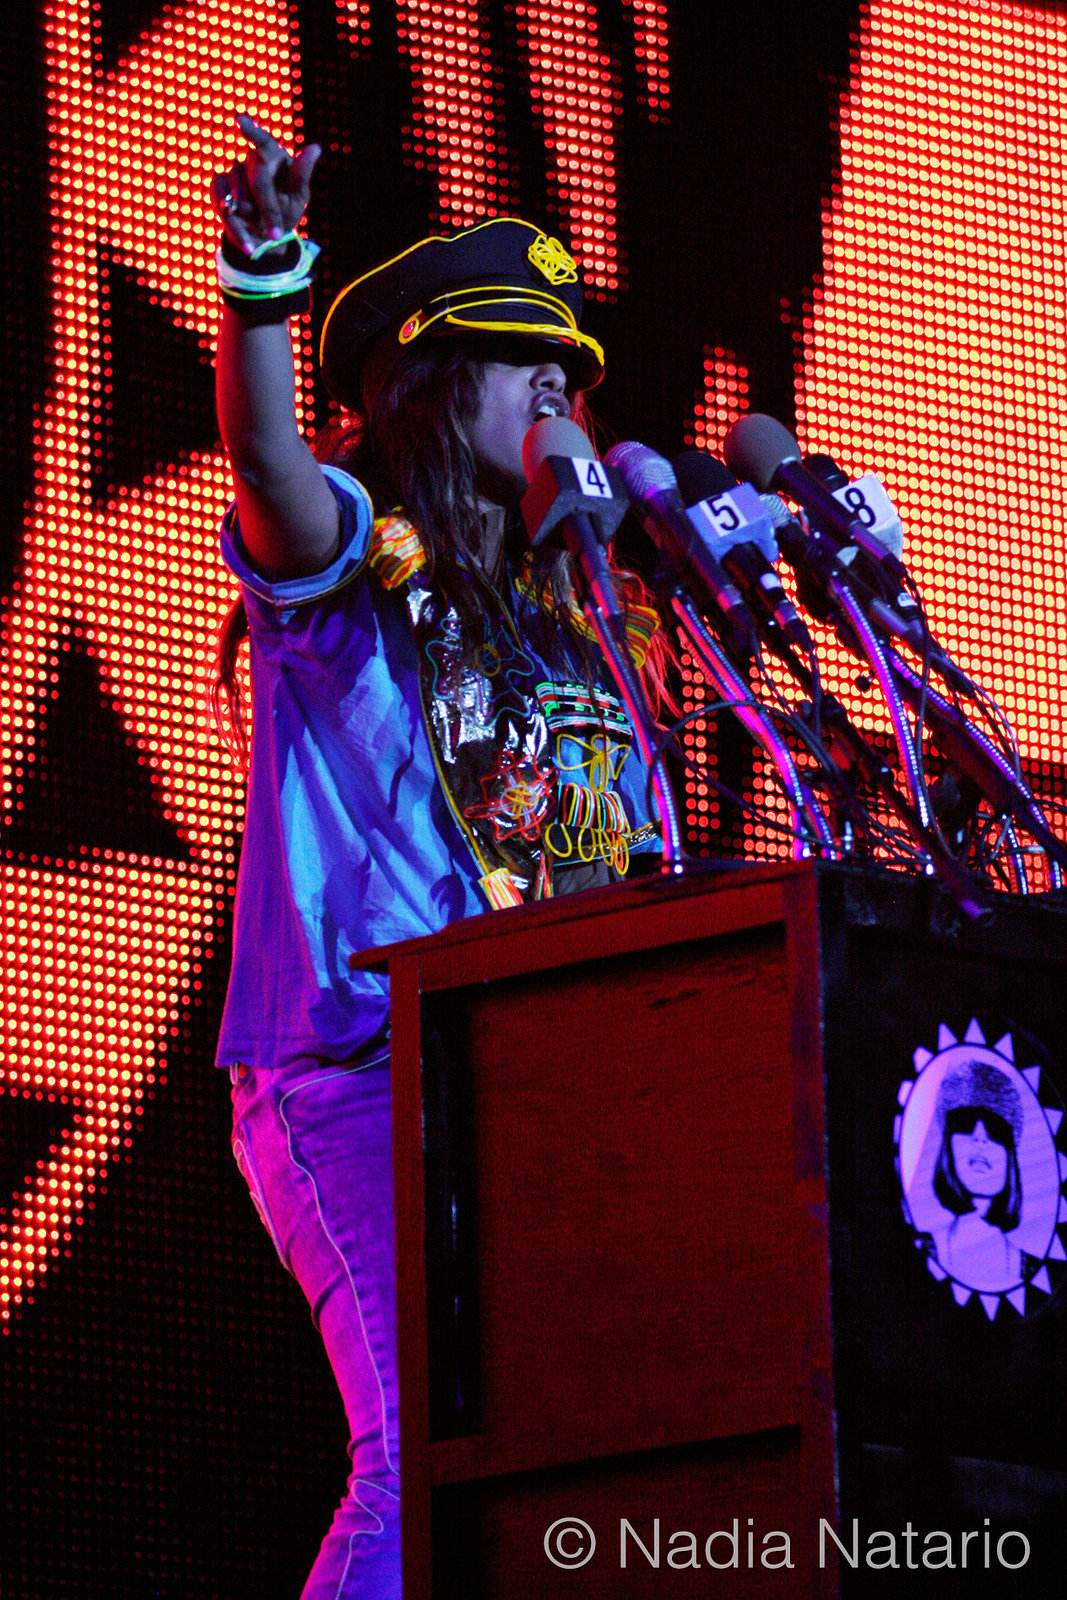 M.I.A at Coachella 2009